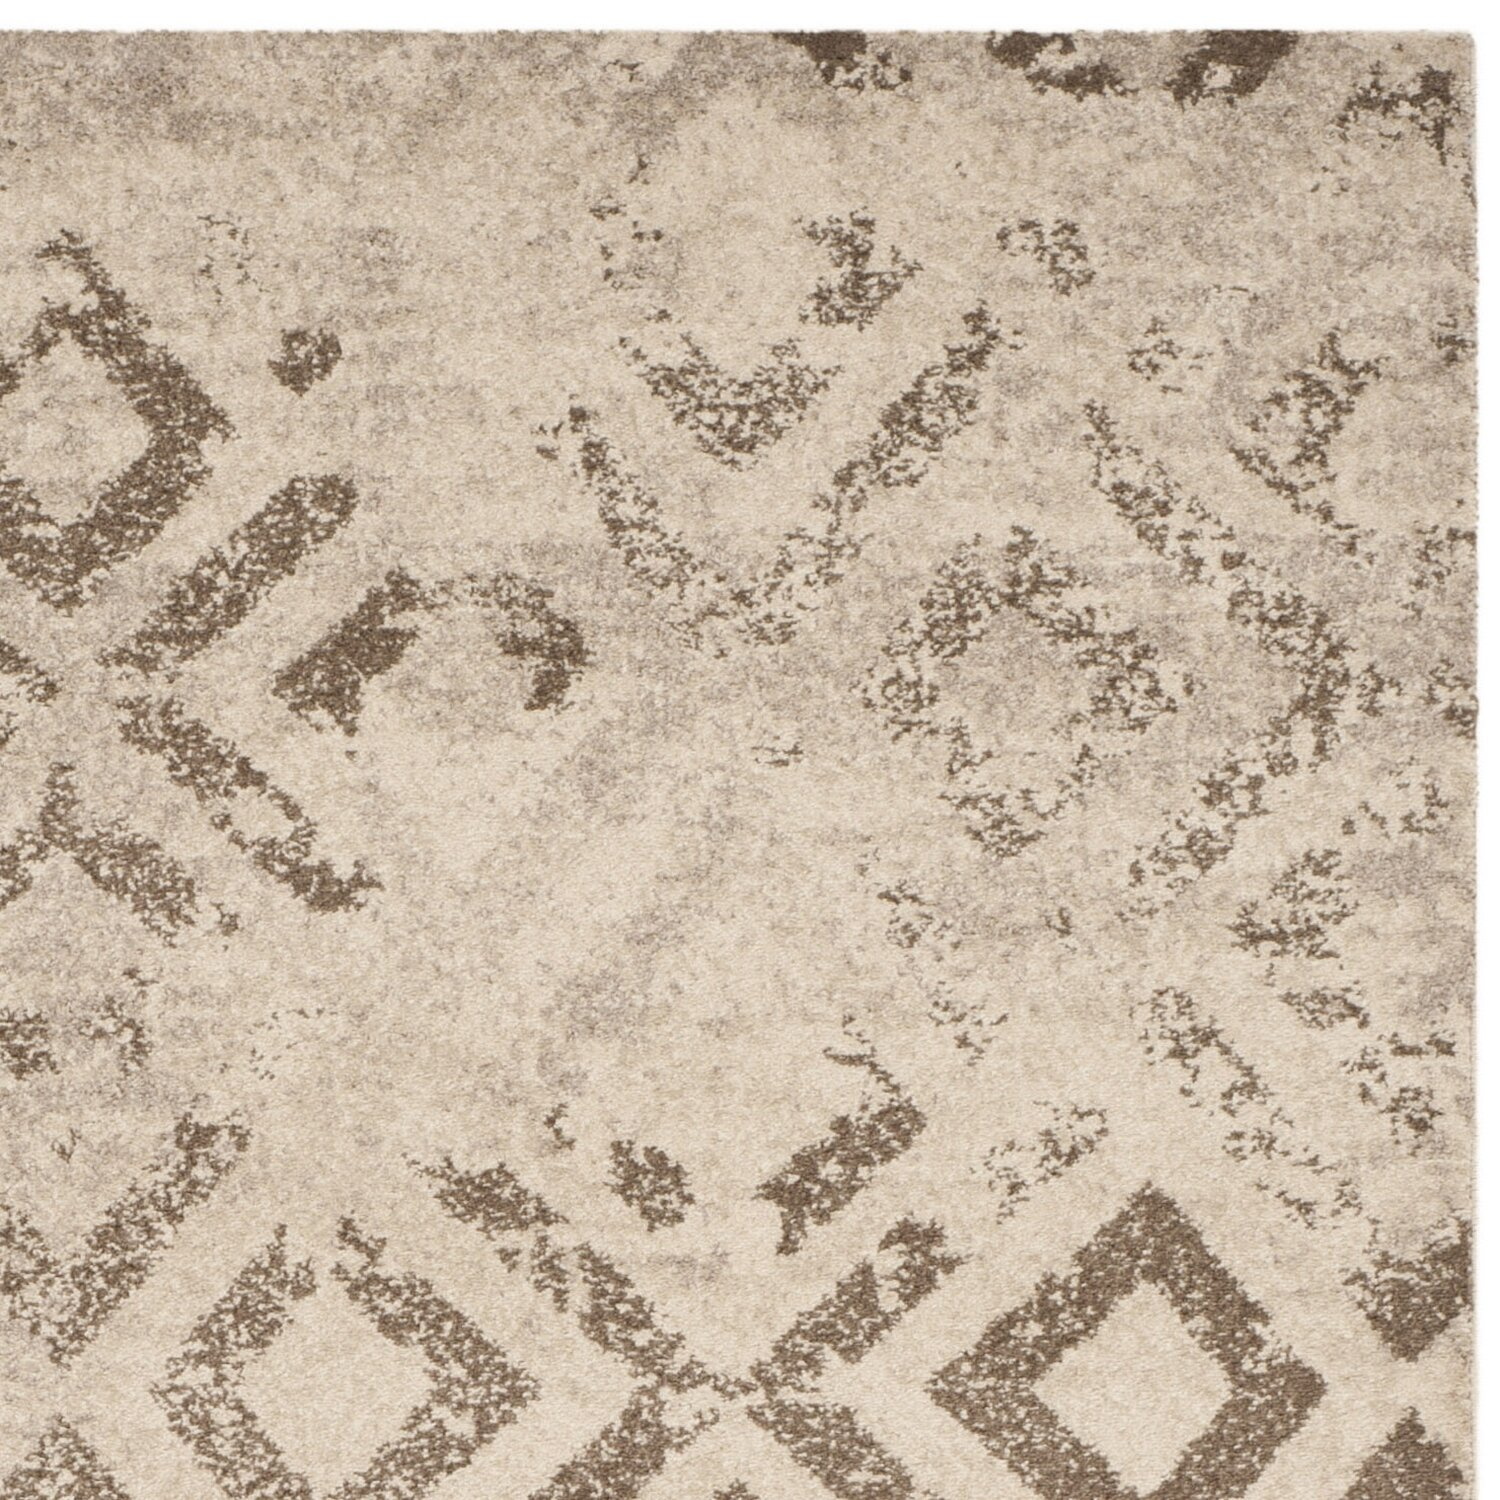 Carpet And Flooring Knoxville Tn: Area Rugs In Knoxville Tn